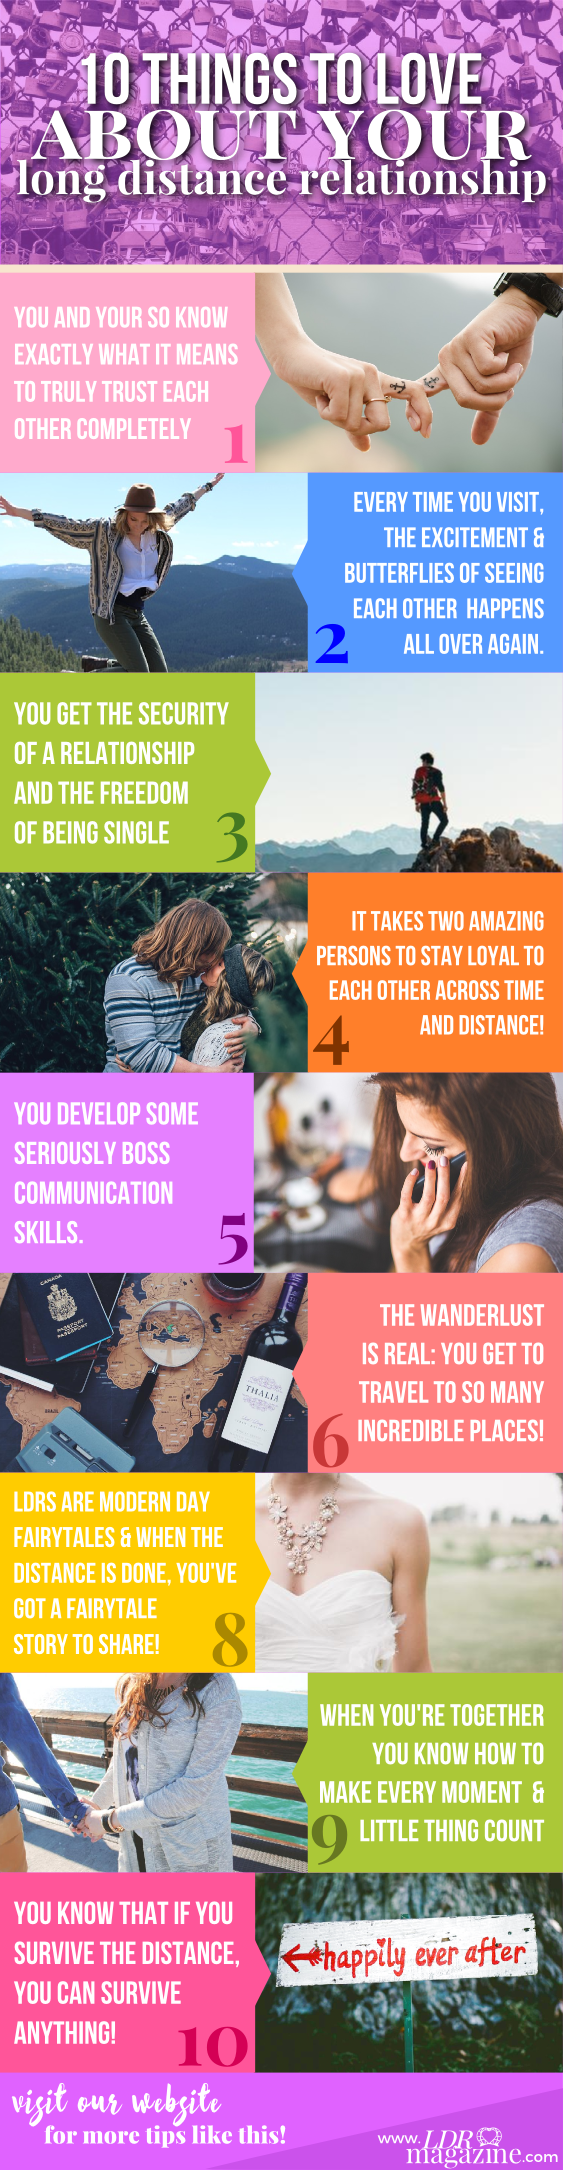 10 things to love about your LDR